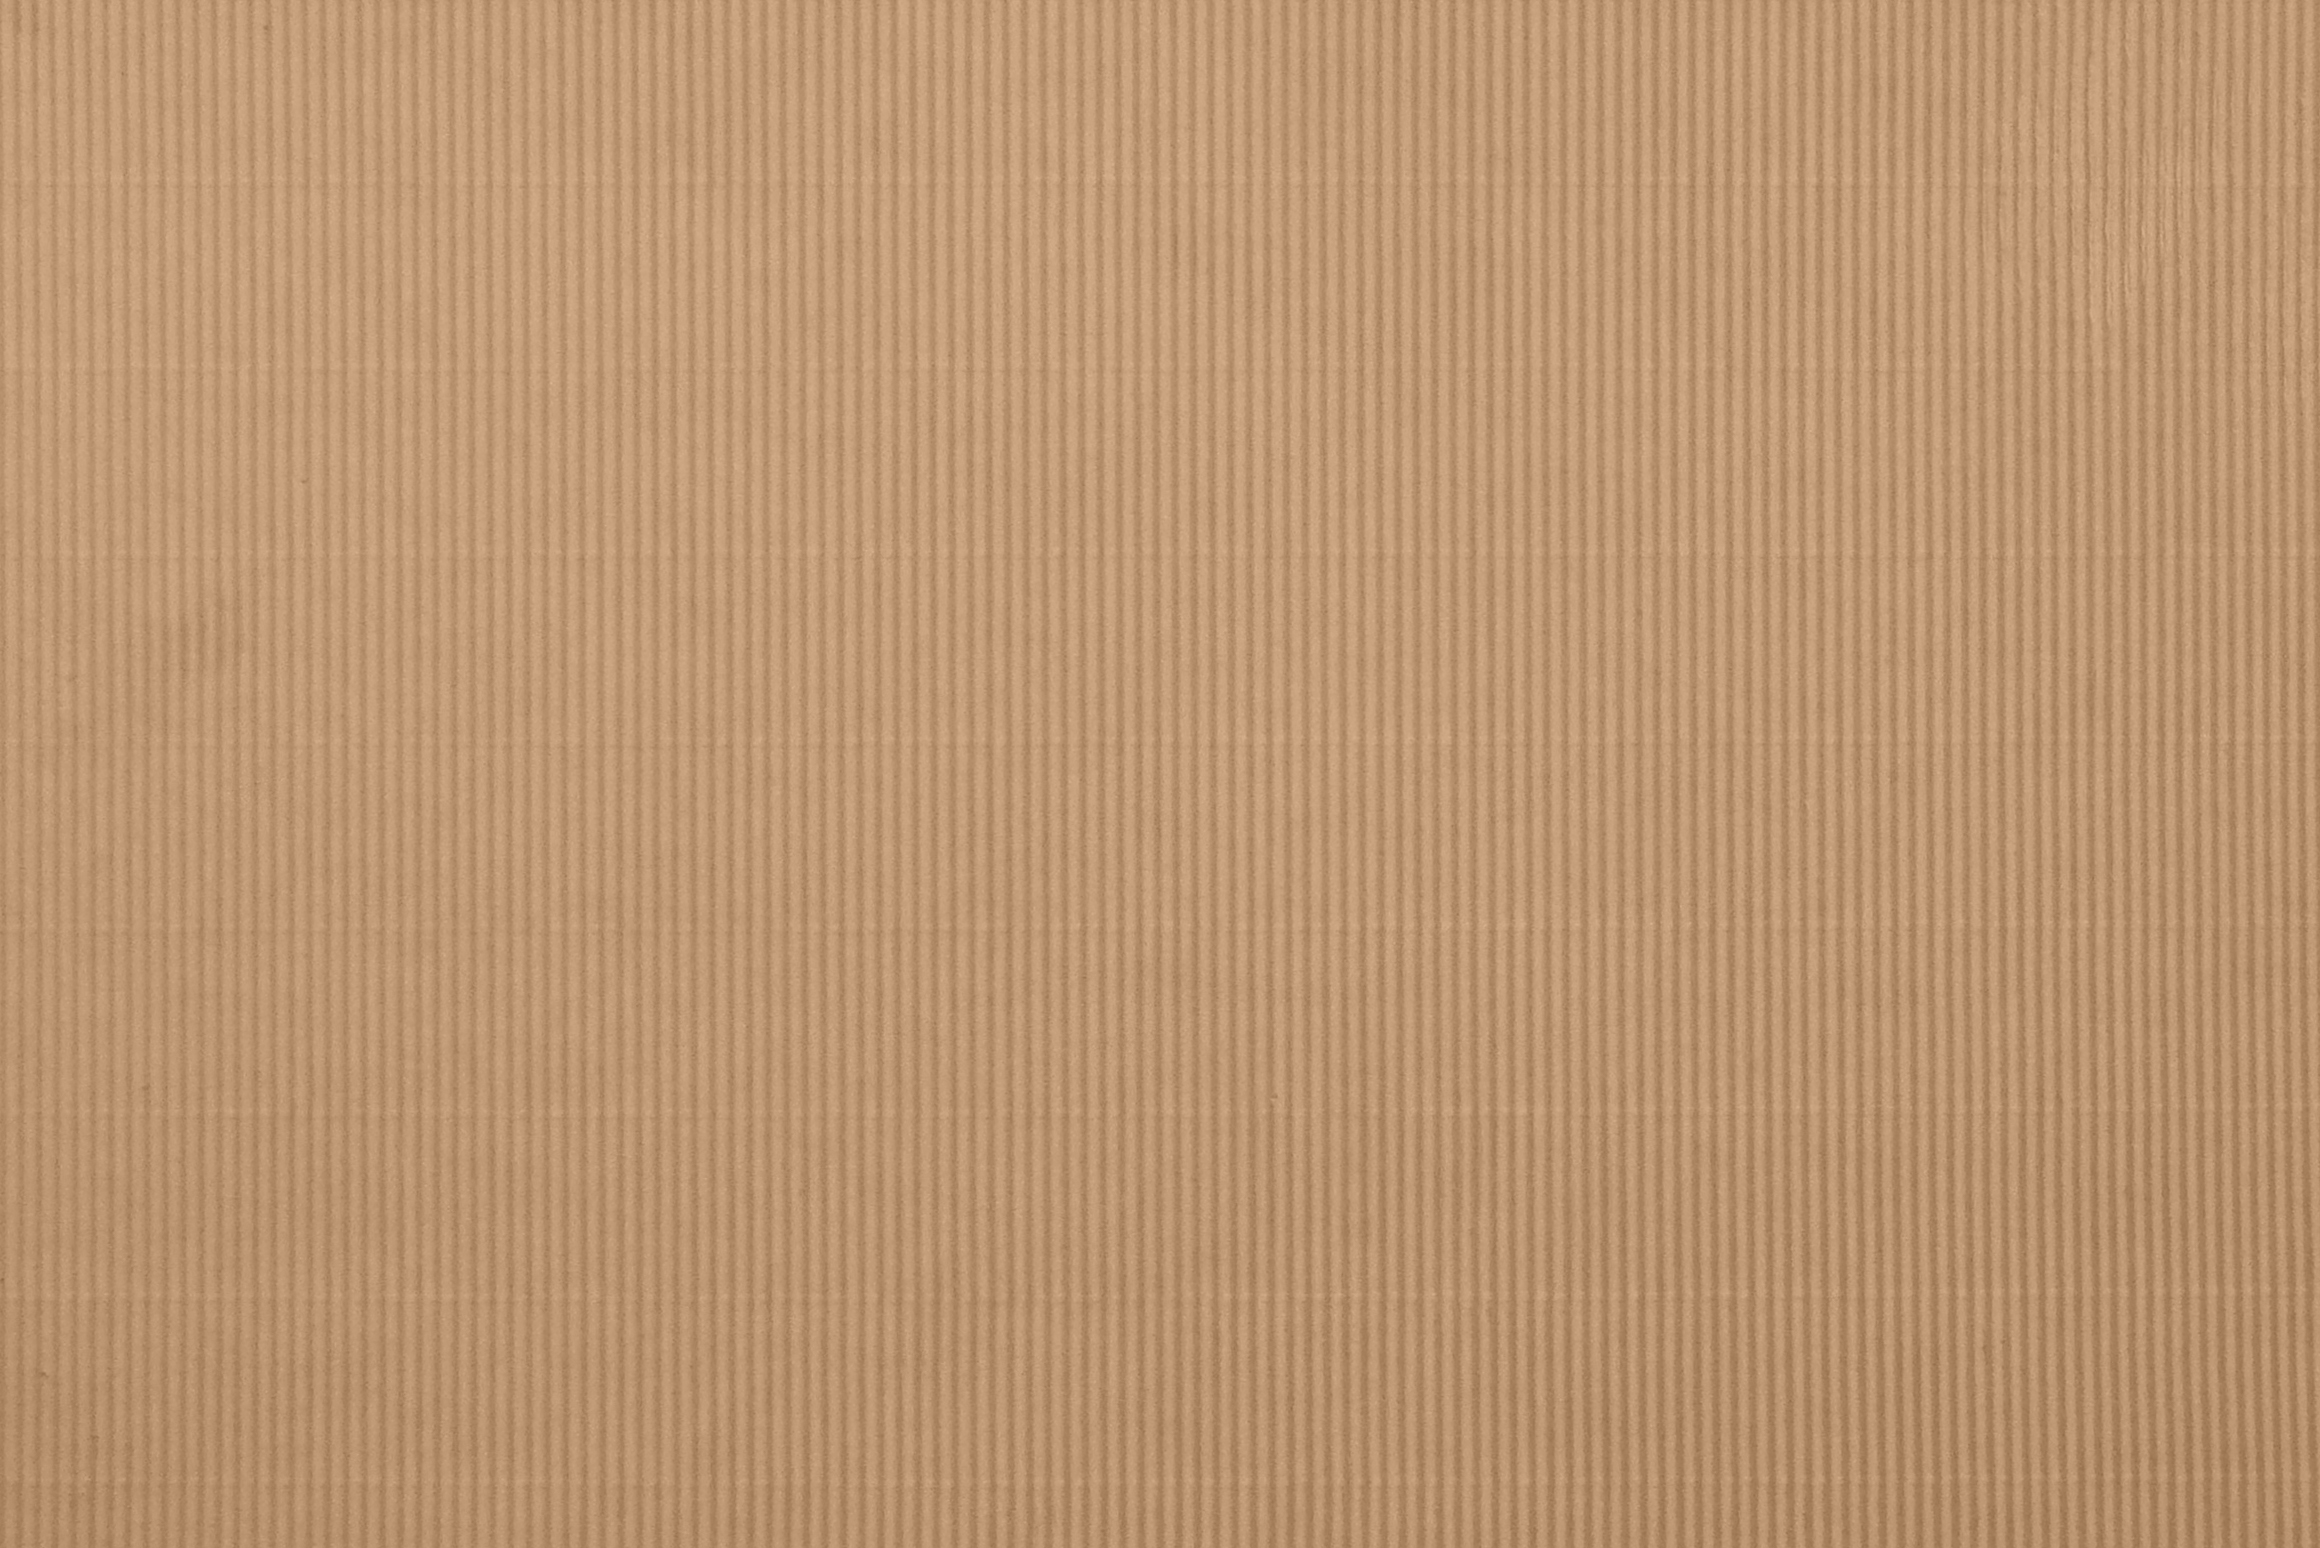 cardboard texture, cardboard, background, cardboard texture, background